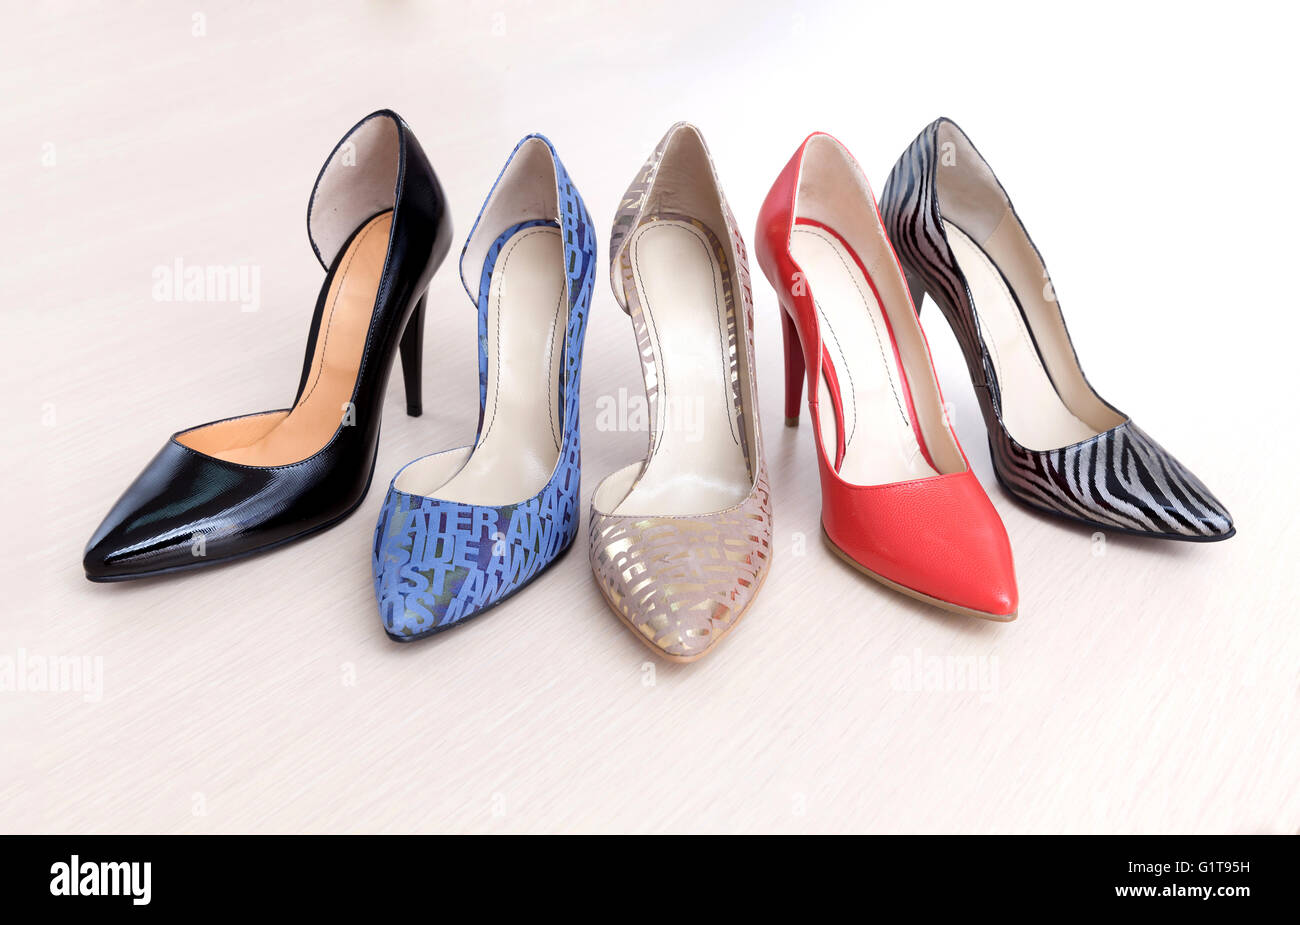 Many different shoes ready for summer sales. - Stock Image